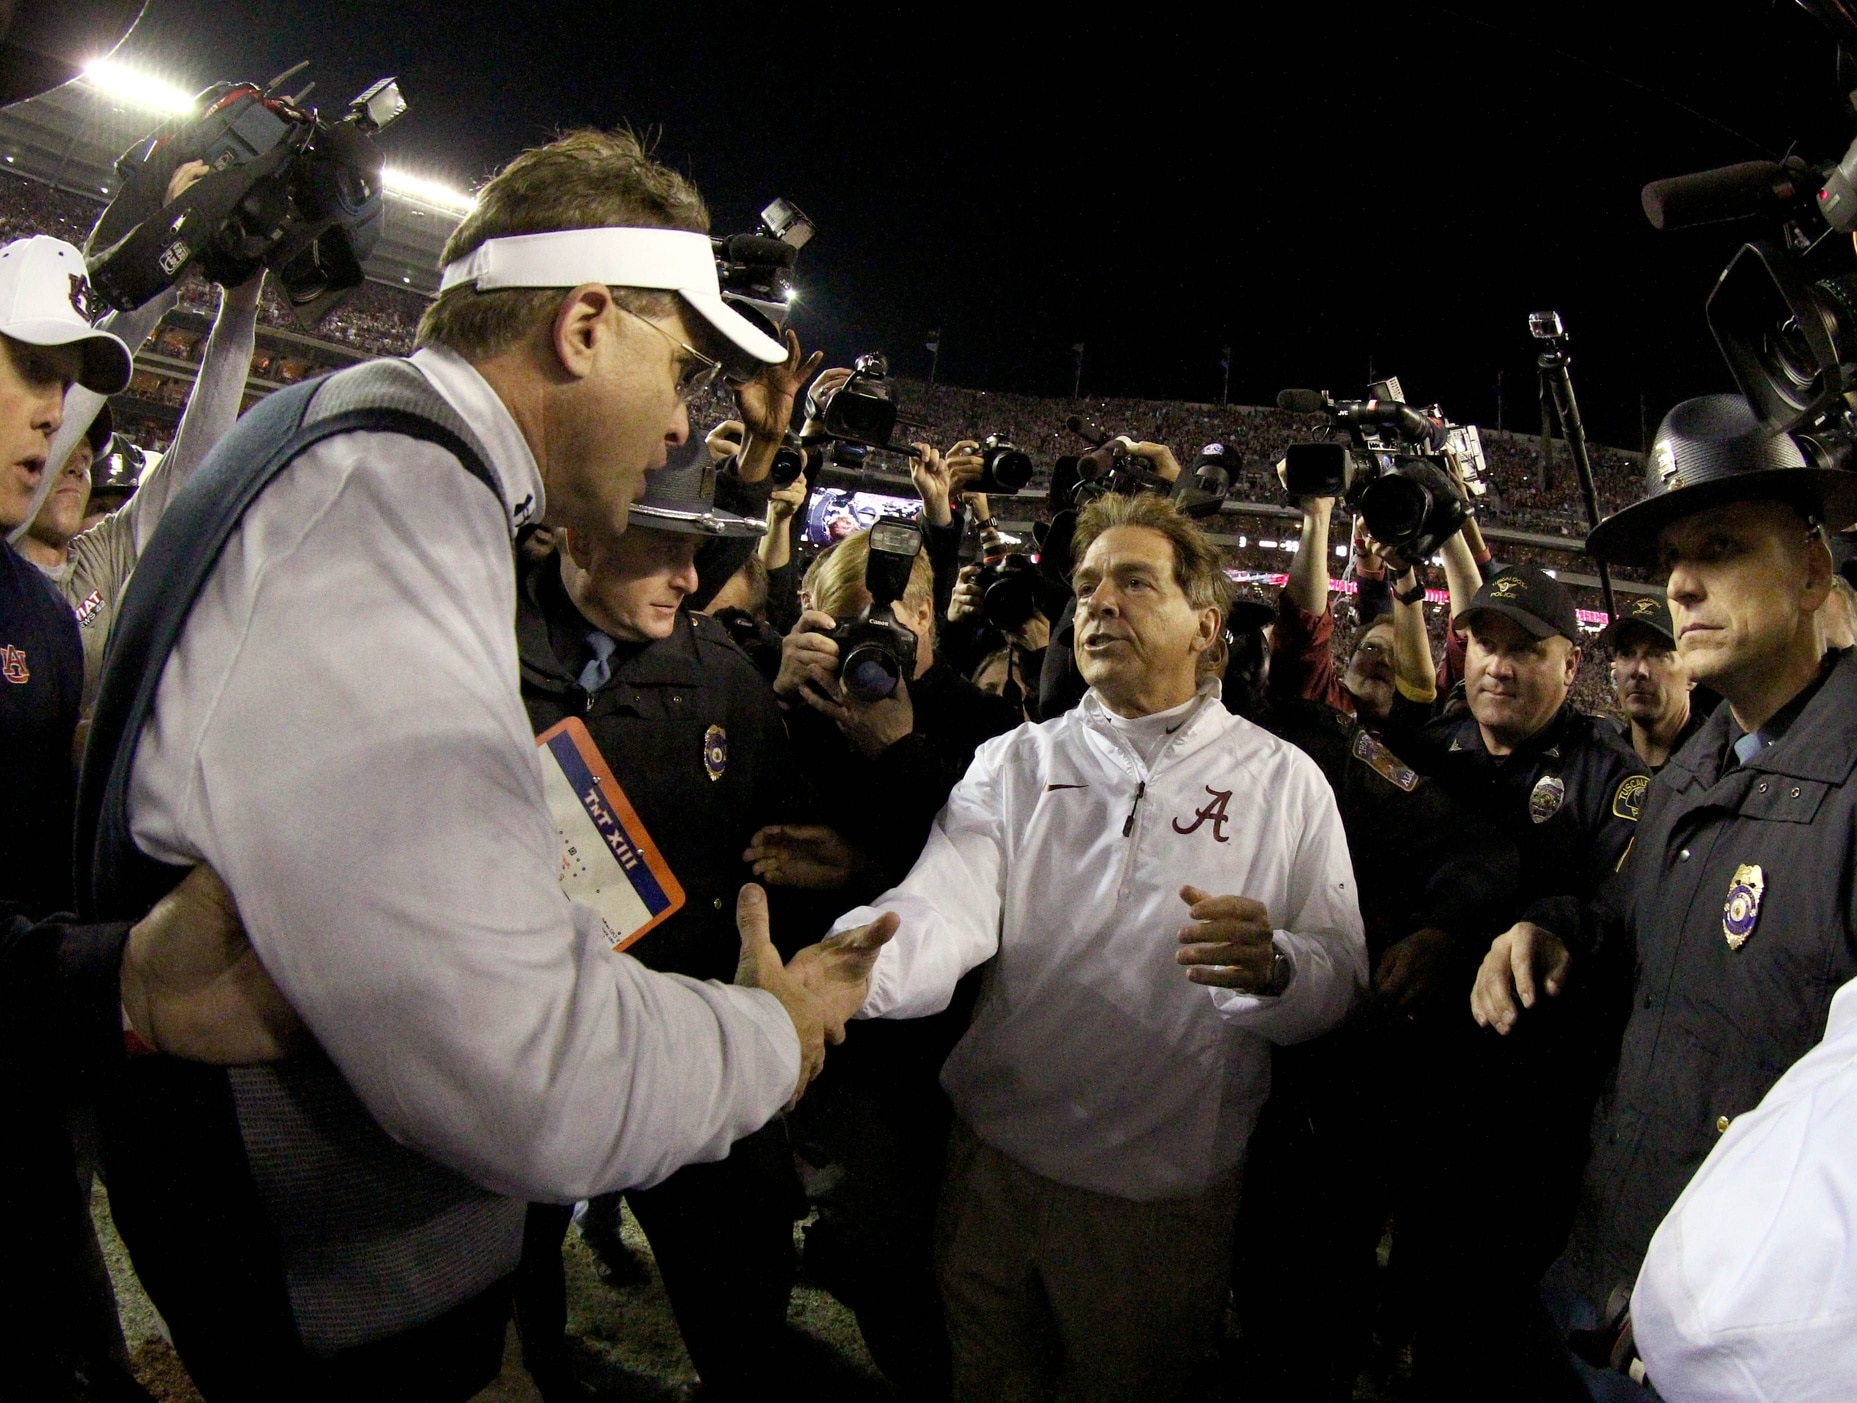 Rivalry Week will be fierce this year as Auburn takes on Alabama for the SEC West